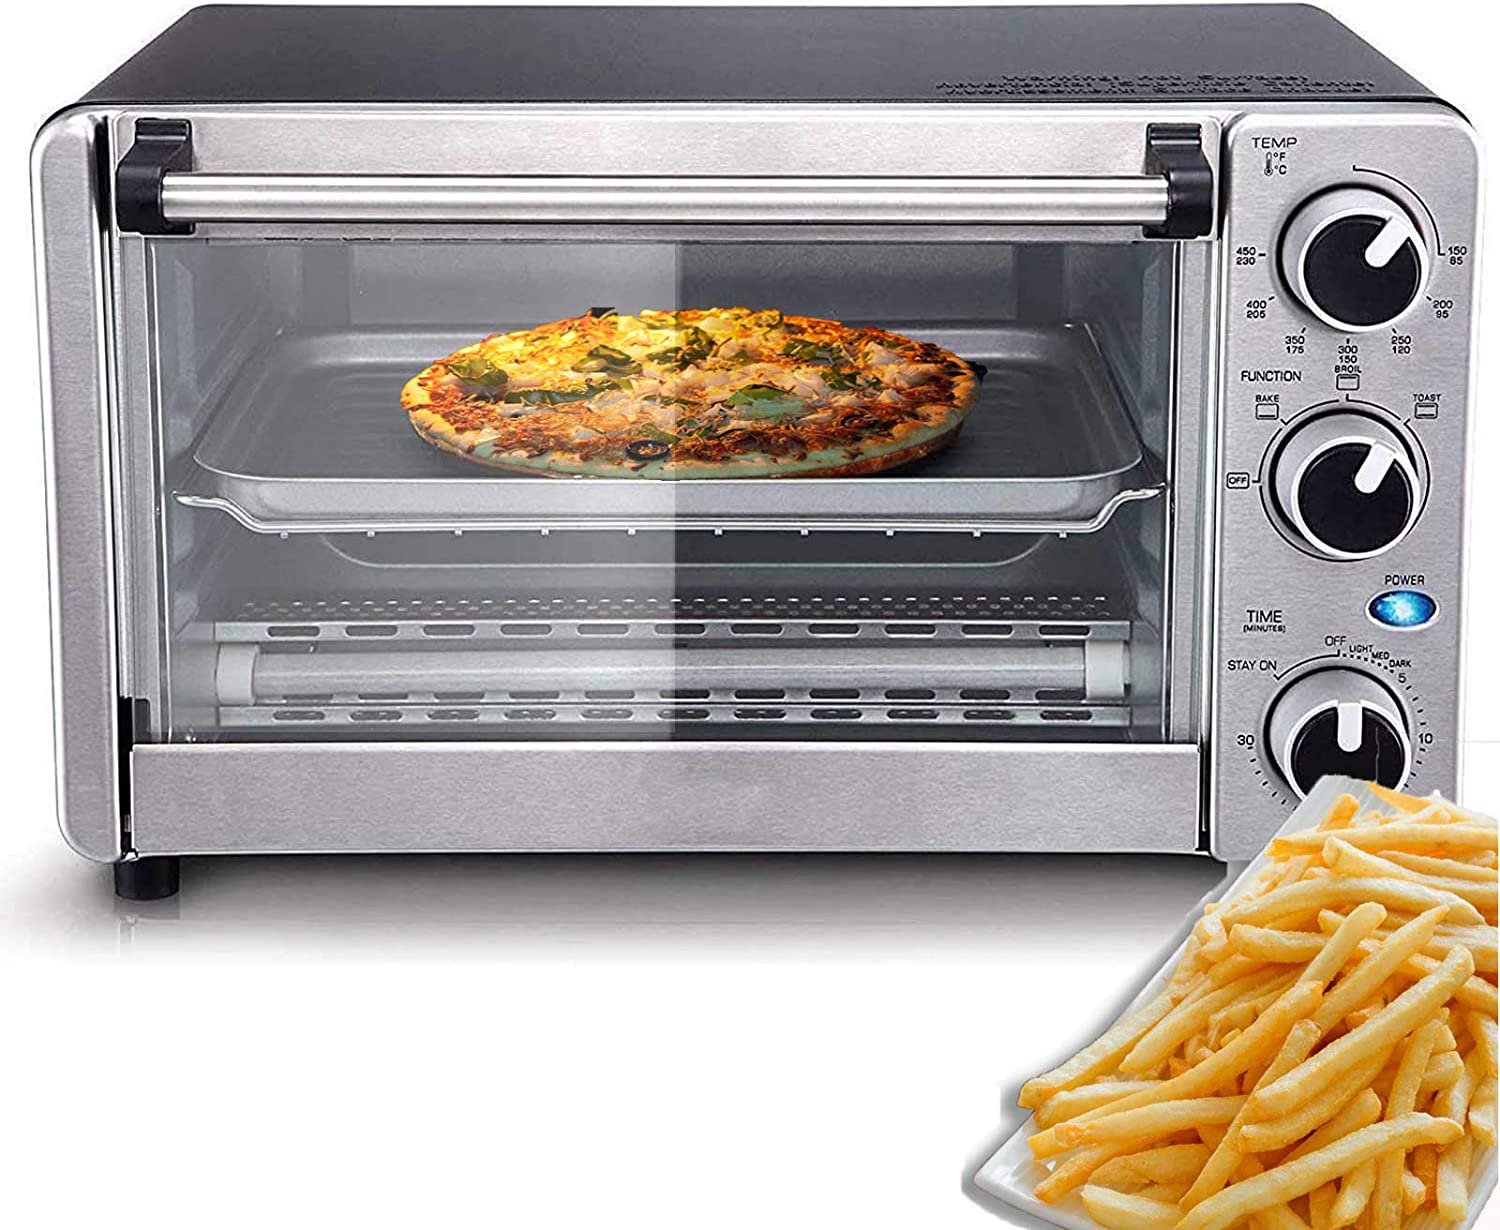 4-Slice Toaster Oven, Multi-function Convection Oven, Stainless Steel Finish (1100W), Sold by IVY